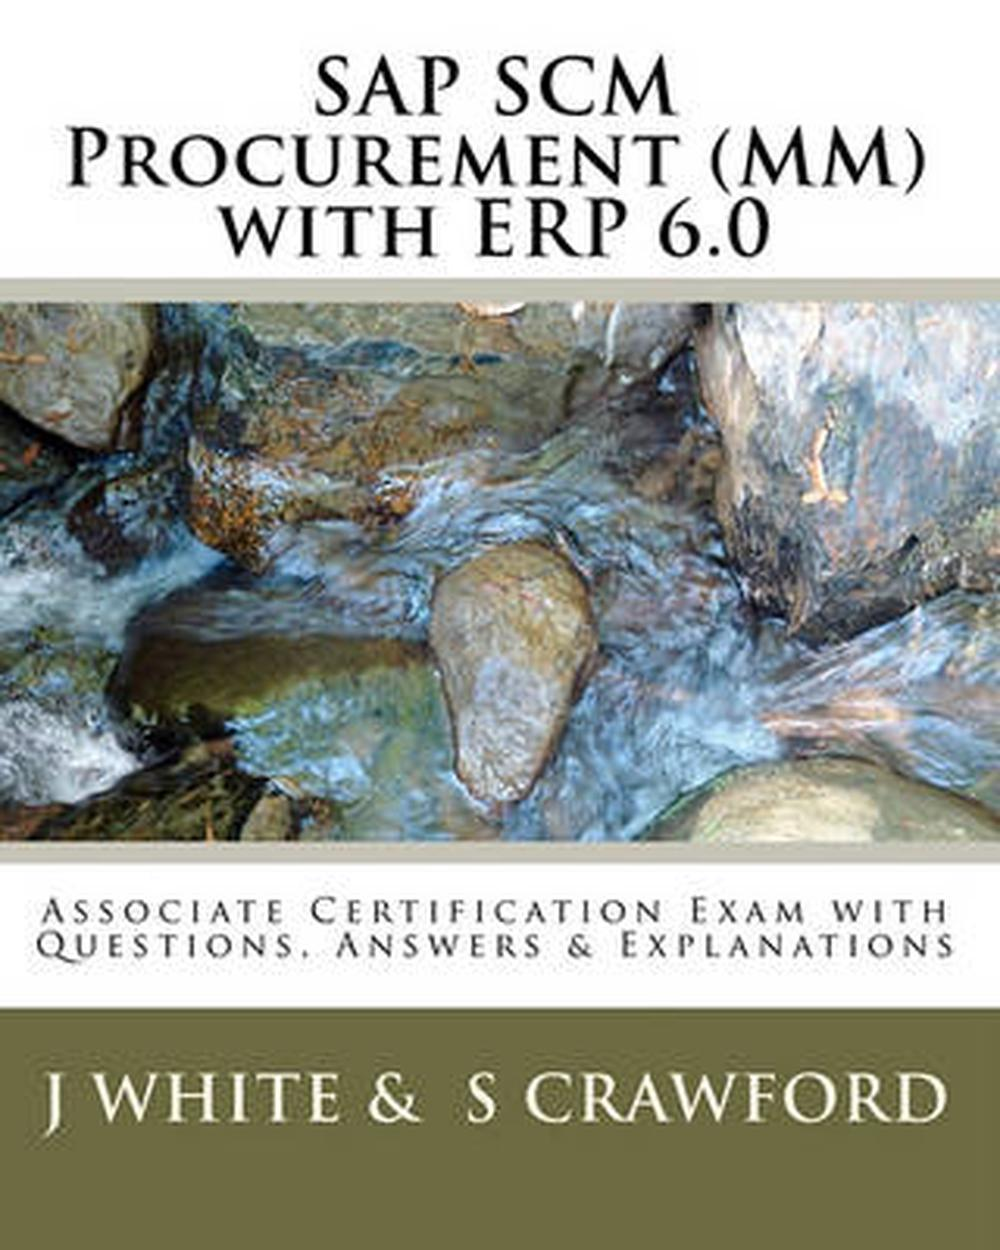 medium resolution of sap scm procurement mm with erp 6 0 associate certification exam with questions answers explanations